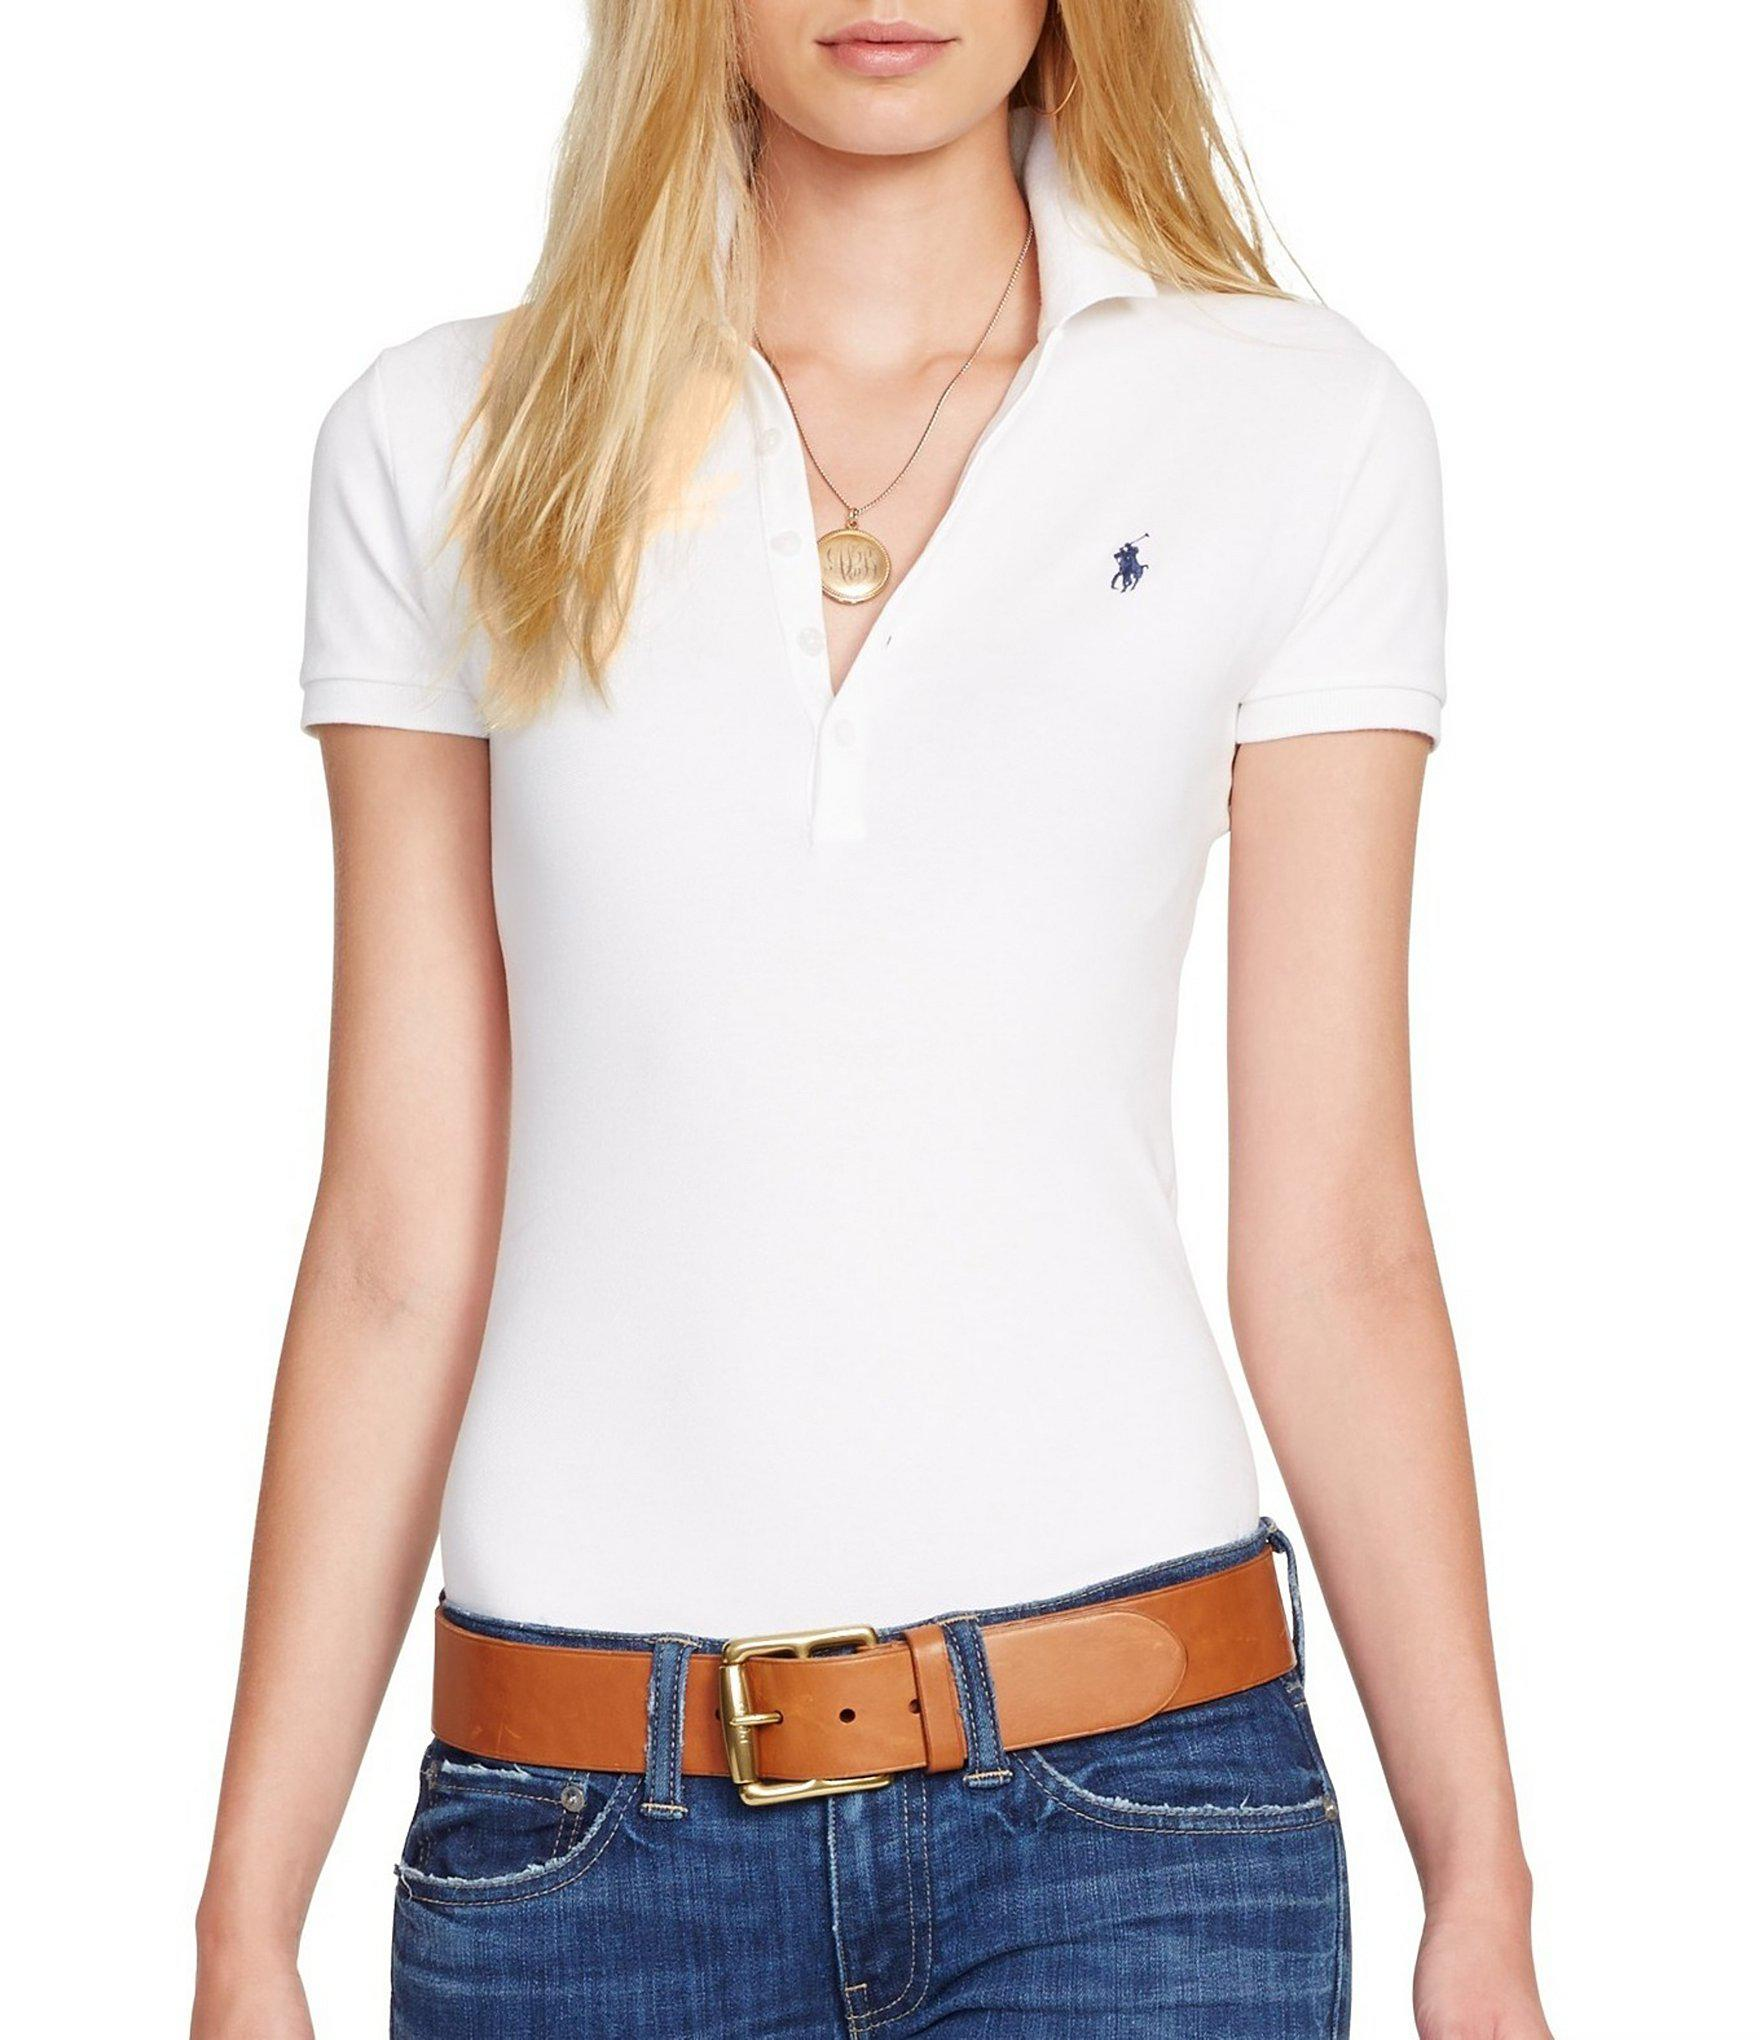 6081ca992 Polo Ralph Lauren Julie Skinny-fit Stretch Polo Shirt in White - Lyst